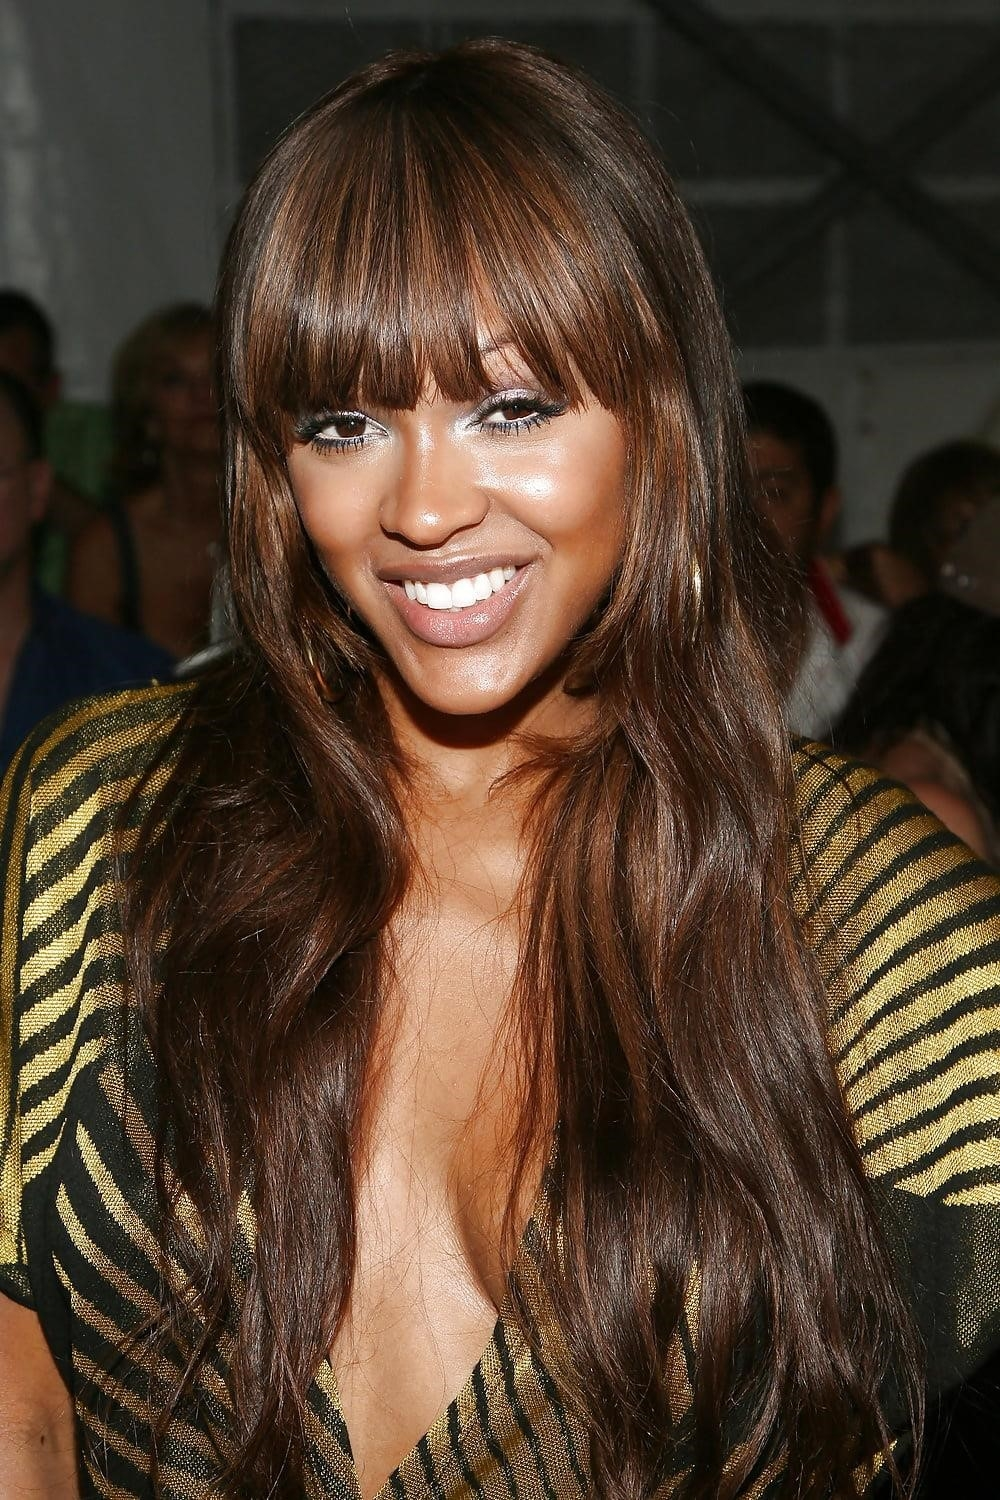 Meagan good nude pictures-2220